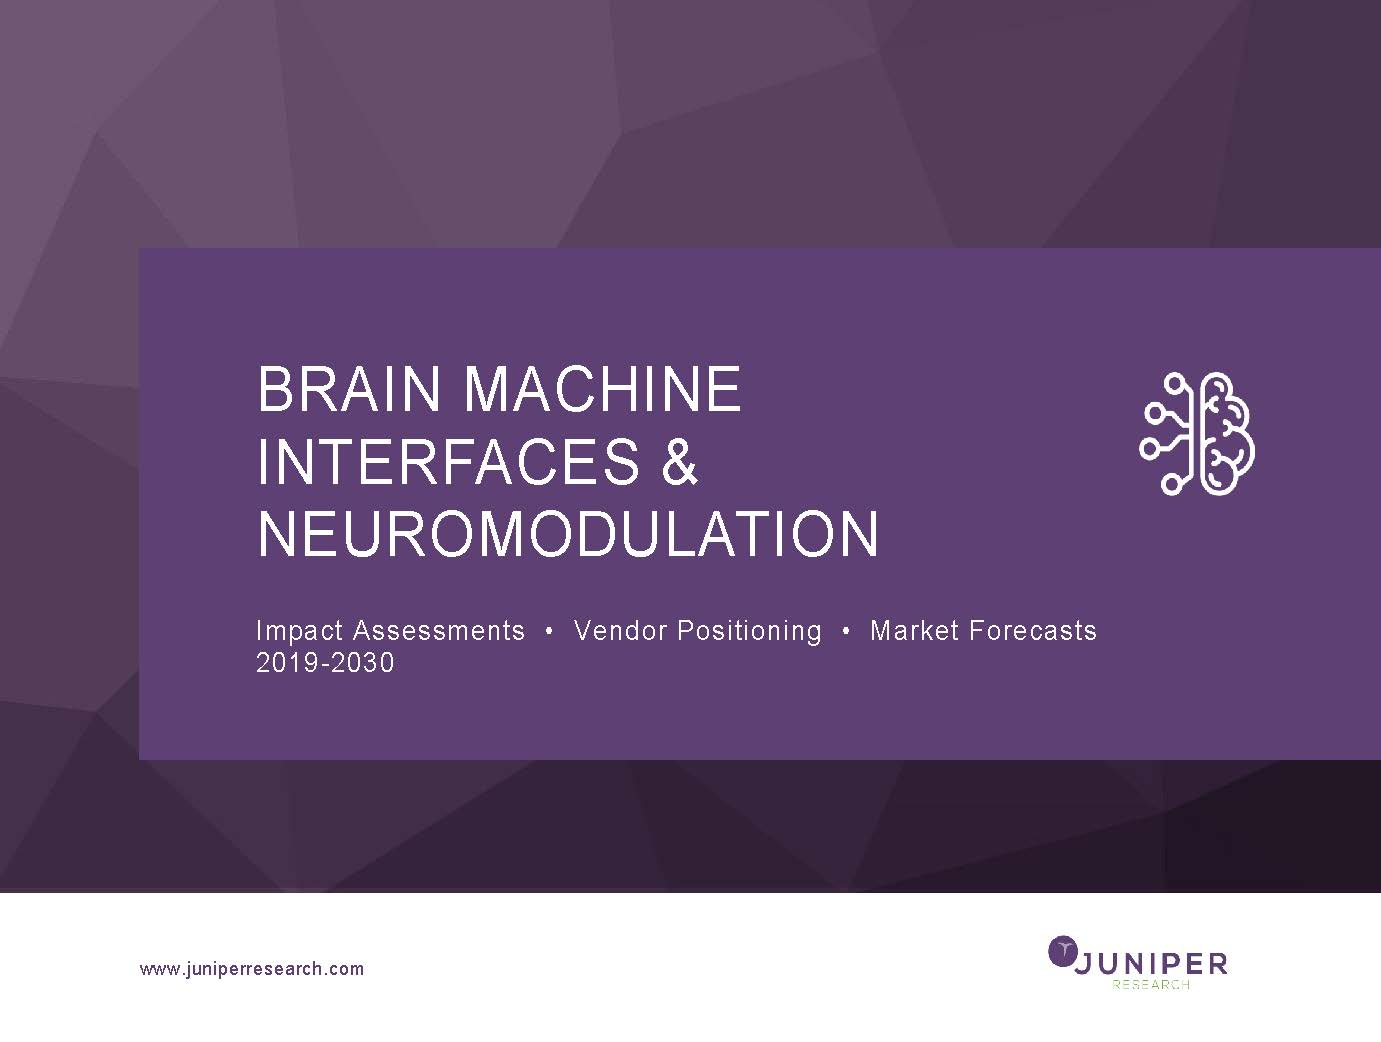 Brain Machine Interfaces & Neuromodulation: Impact Assessments, Vendor Positioning & Market Forecasts 2019-2030